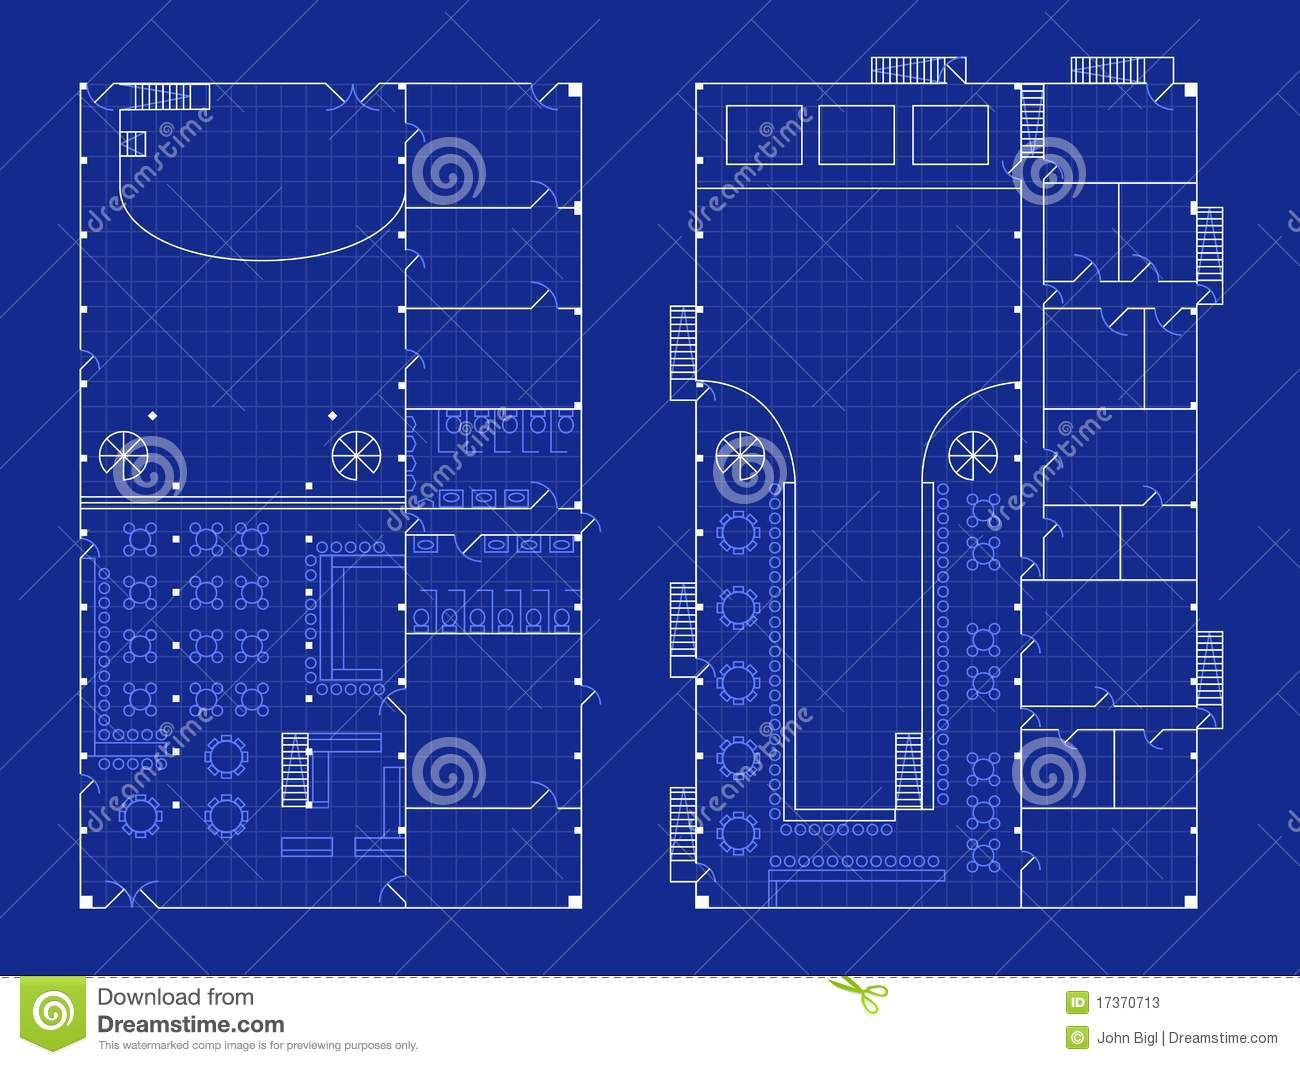 Design House Blueprint Free Simple Nightclub Blueprint Stock Vector Image Of Lounge